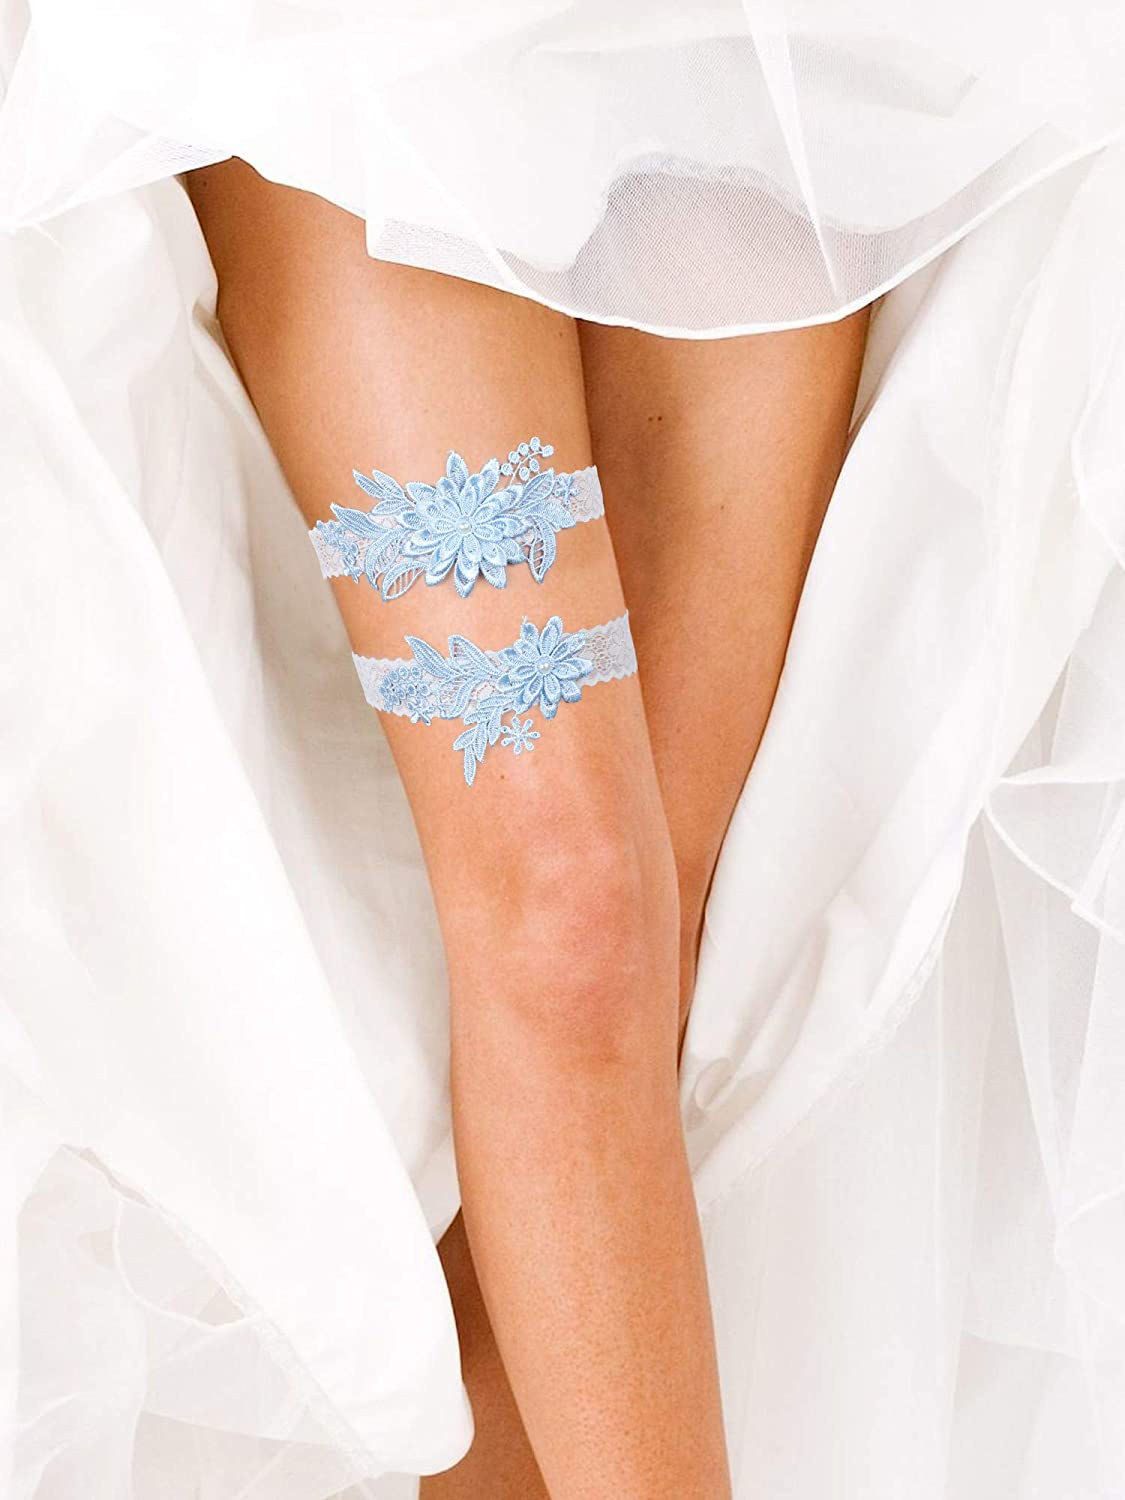 2 Pieces Wedding Garters Daisy Lace Bridal Garter Hand Sewn Faux Pearls Garter for Bride